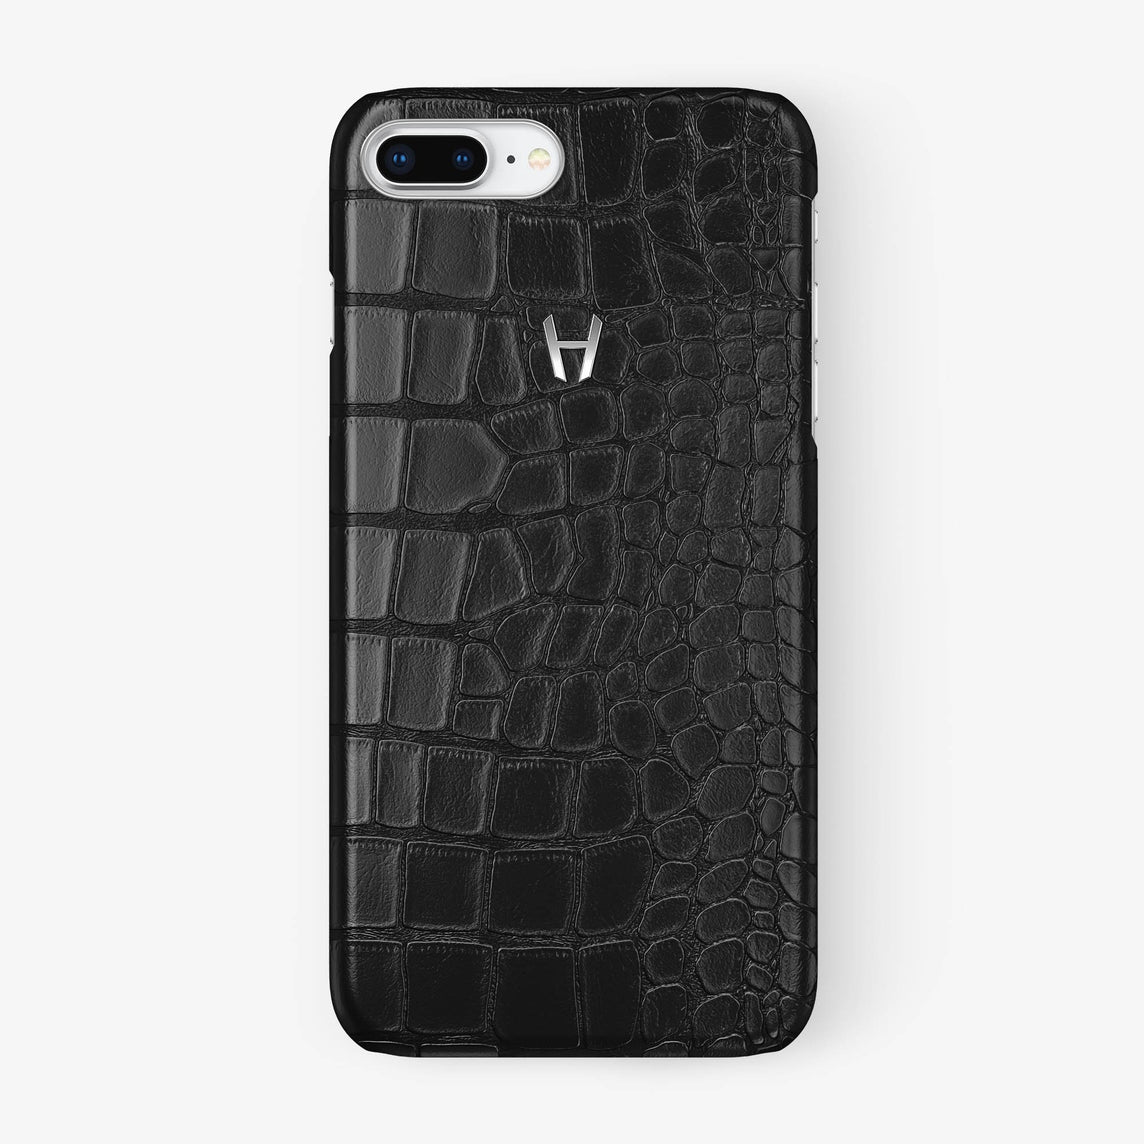 Alligator Case iPhone 7/8 Plus | Black - Stainless Steel - Hadoro